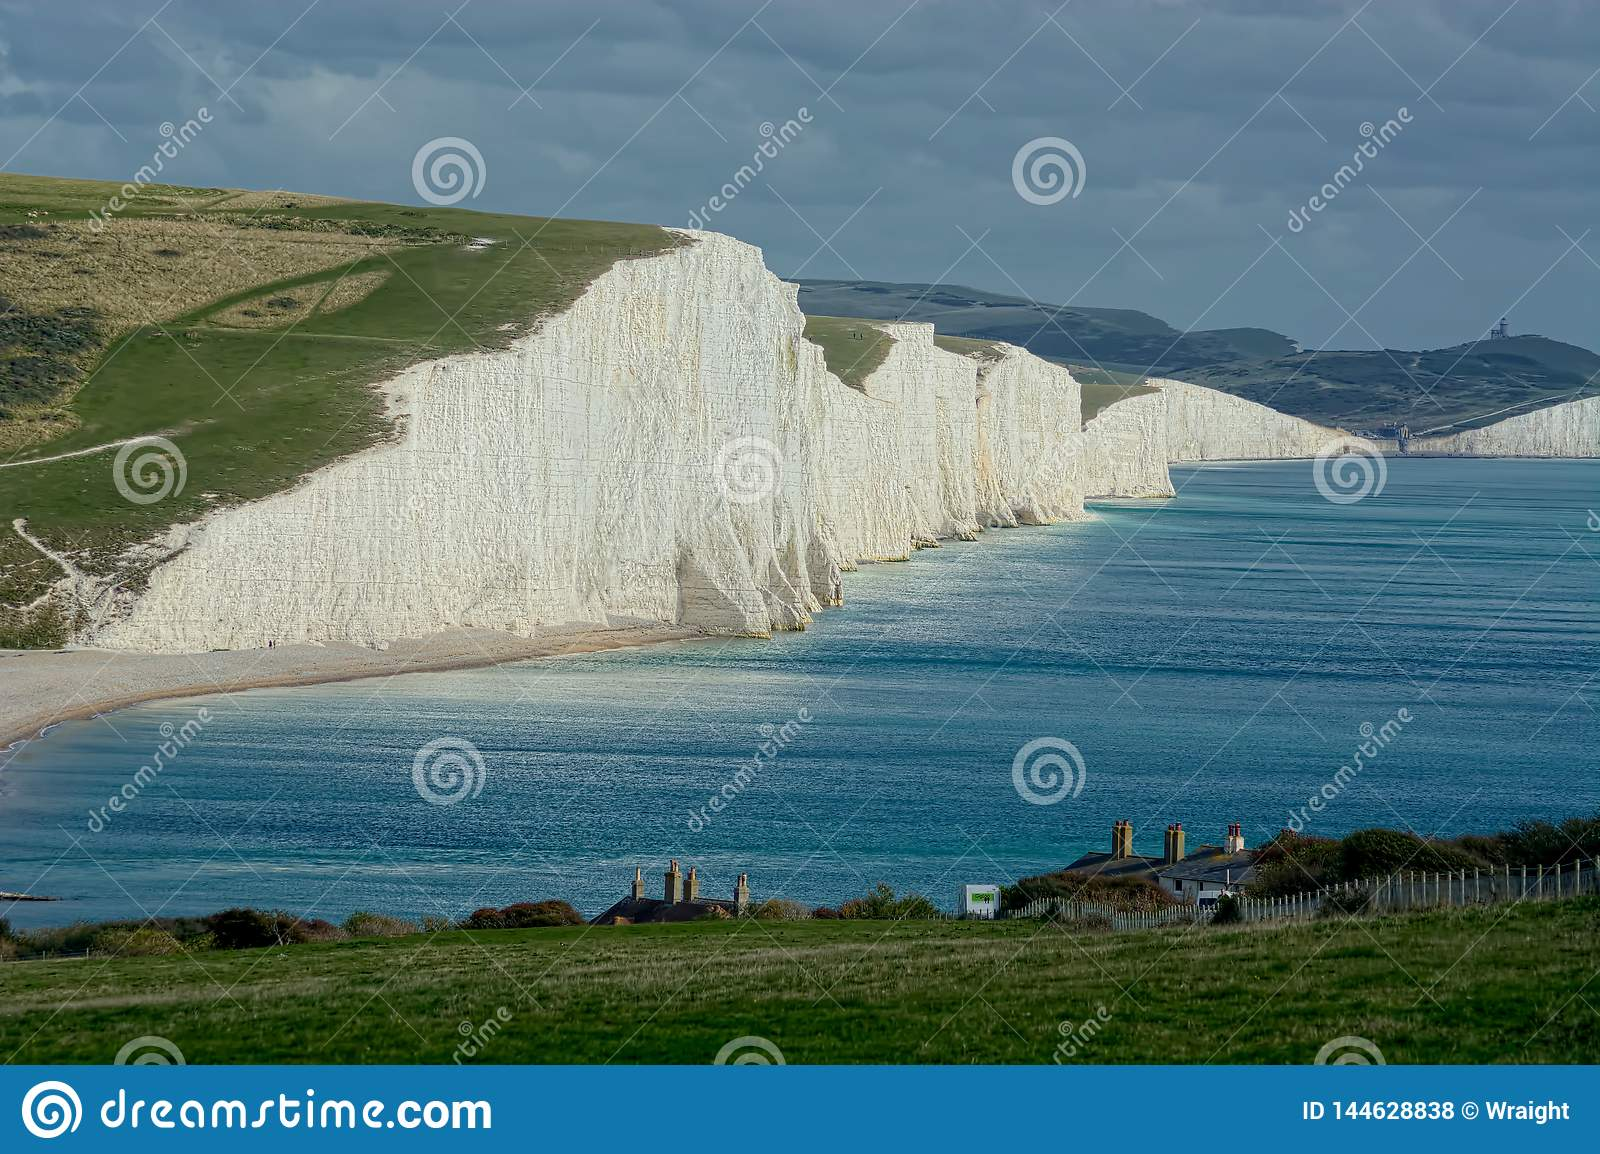 View of Seven Sisters chalk cliffs, Sussex UK